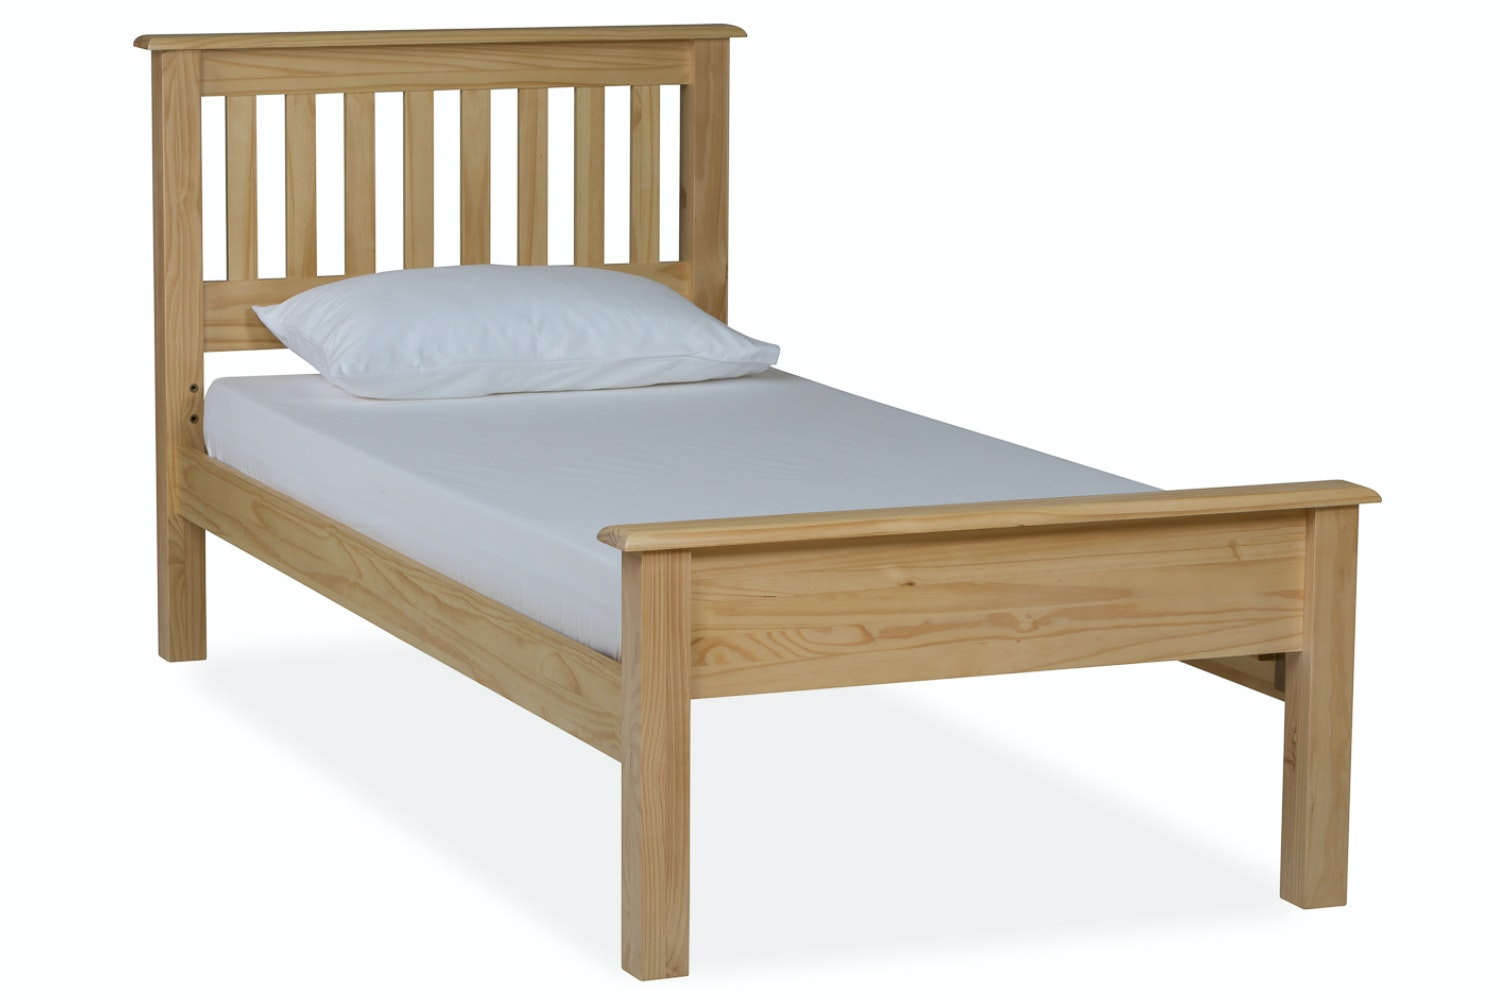 Shaker Single Bed Frame (3ft)